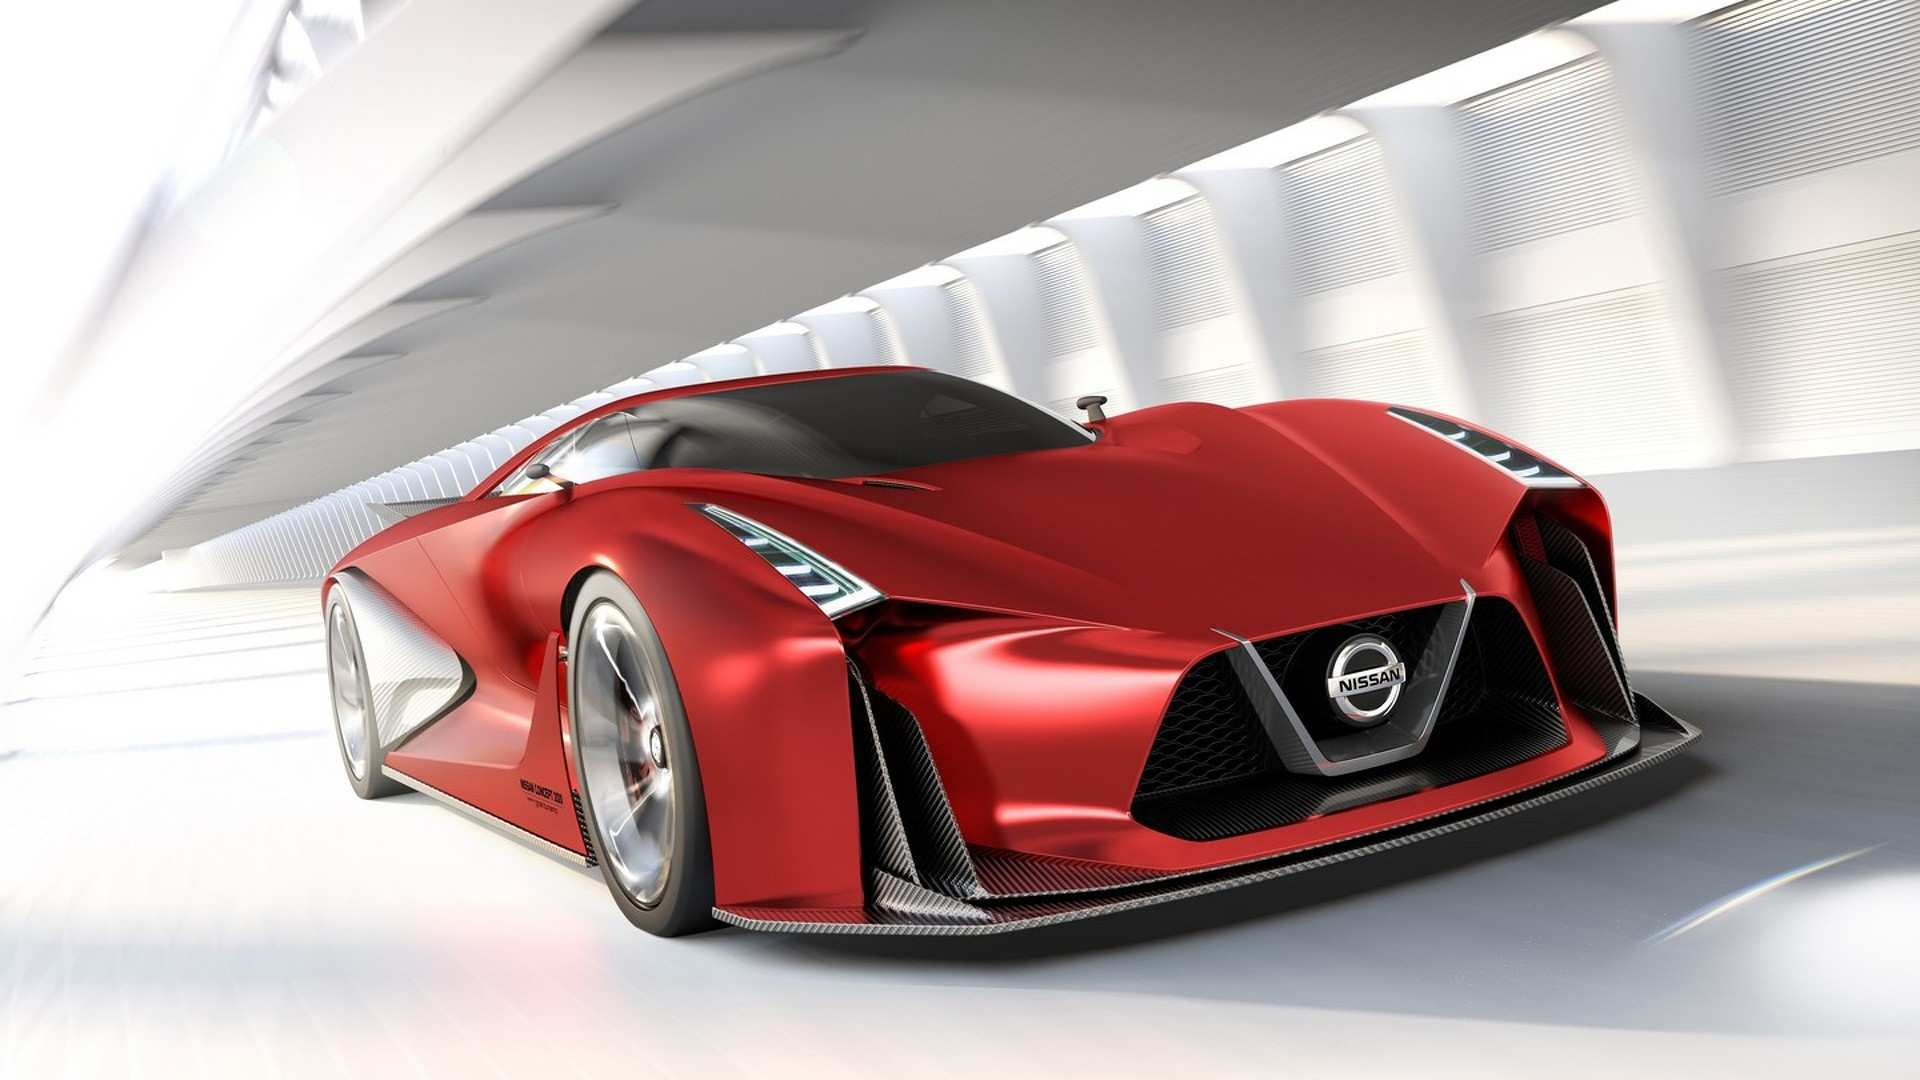 60 Concept of Nissan 2020 Sports Car Exterior and Interior with Nissan 2020 Sports Car